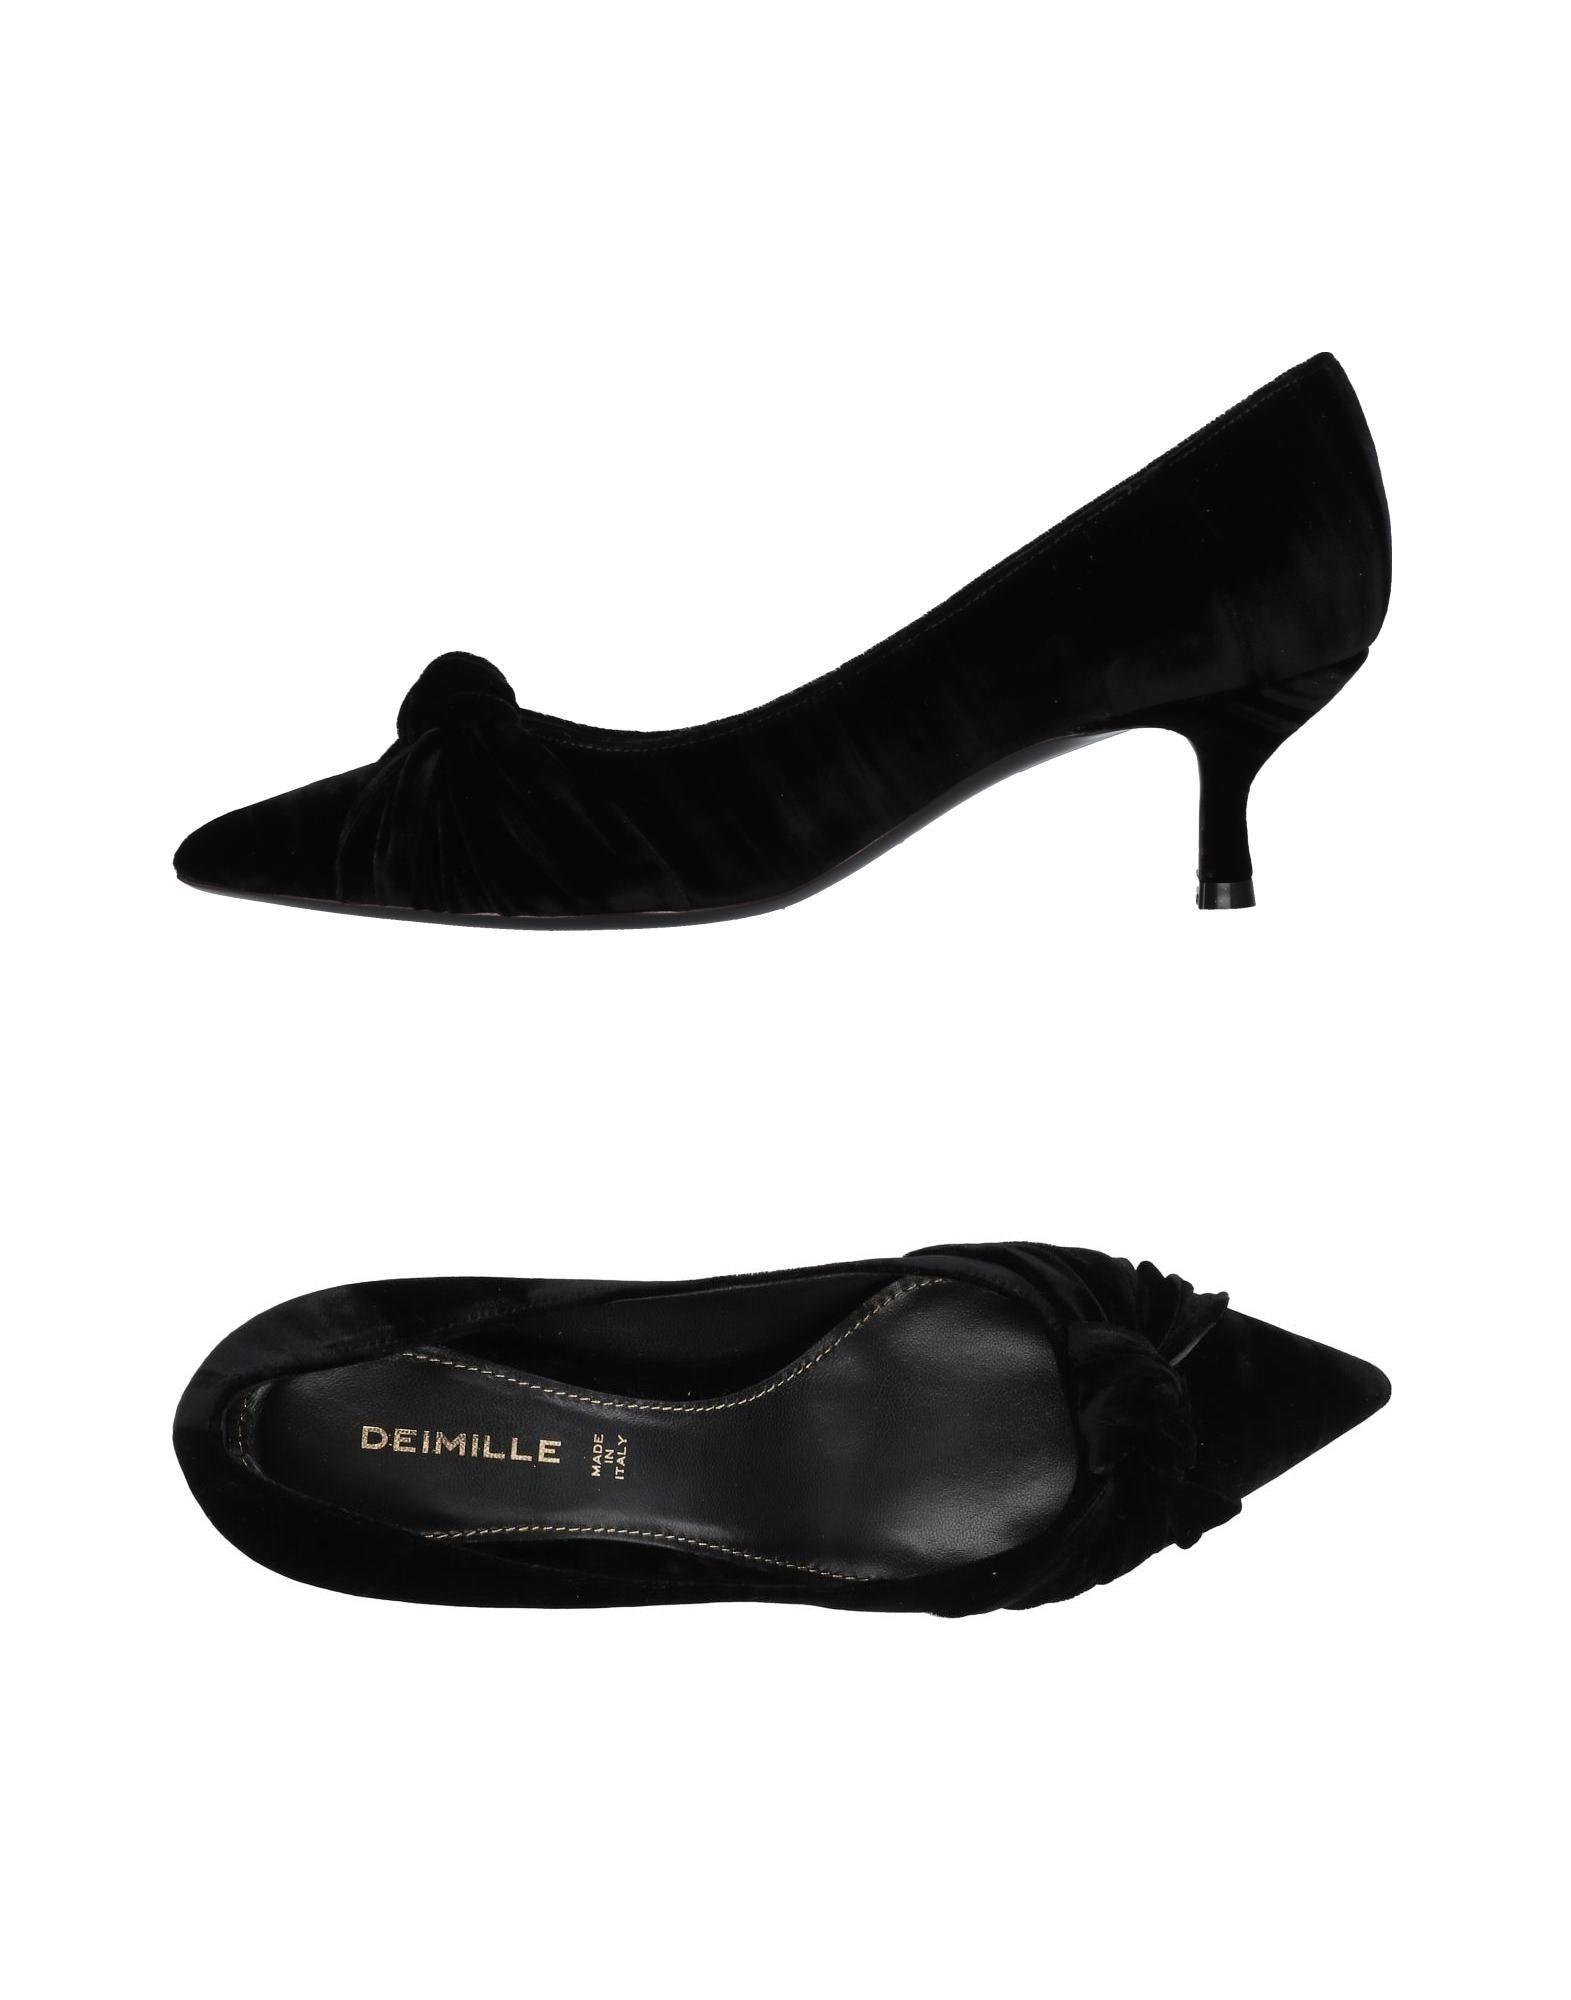 Deimille Pumps In Black